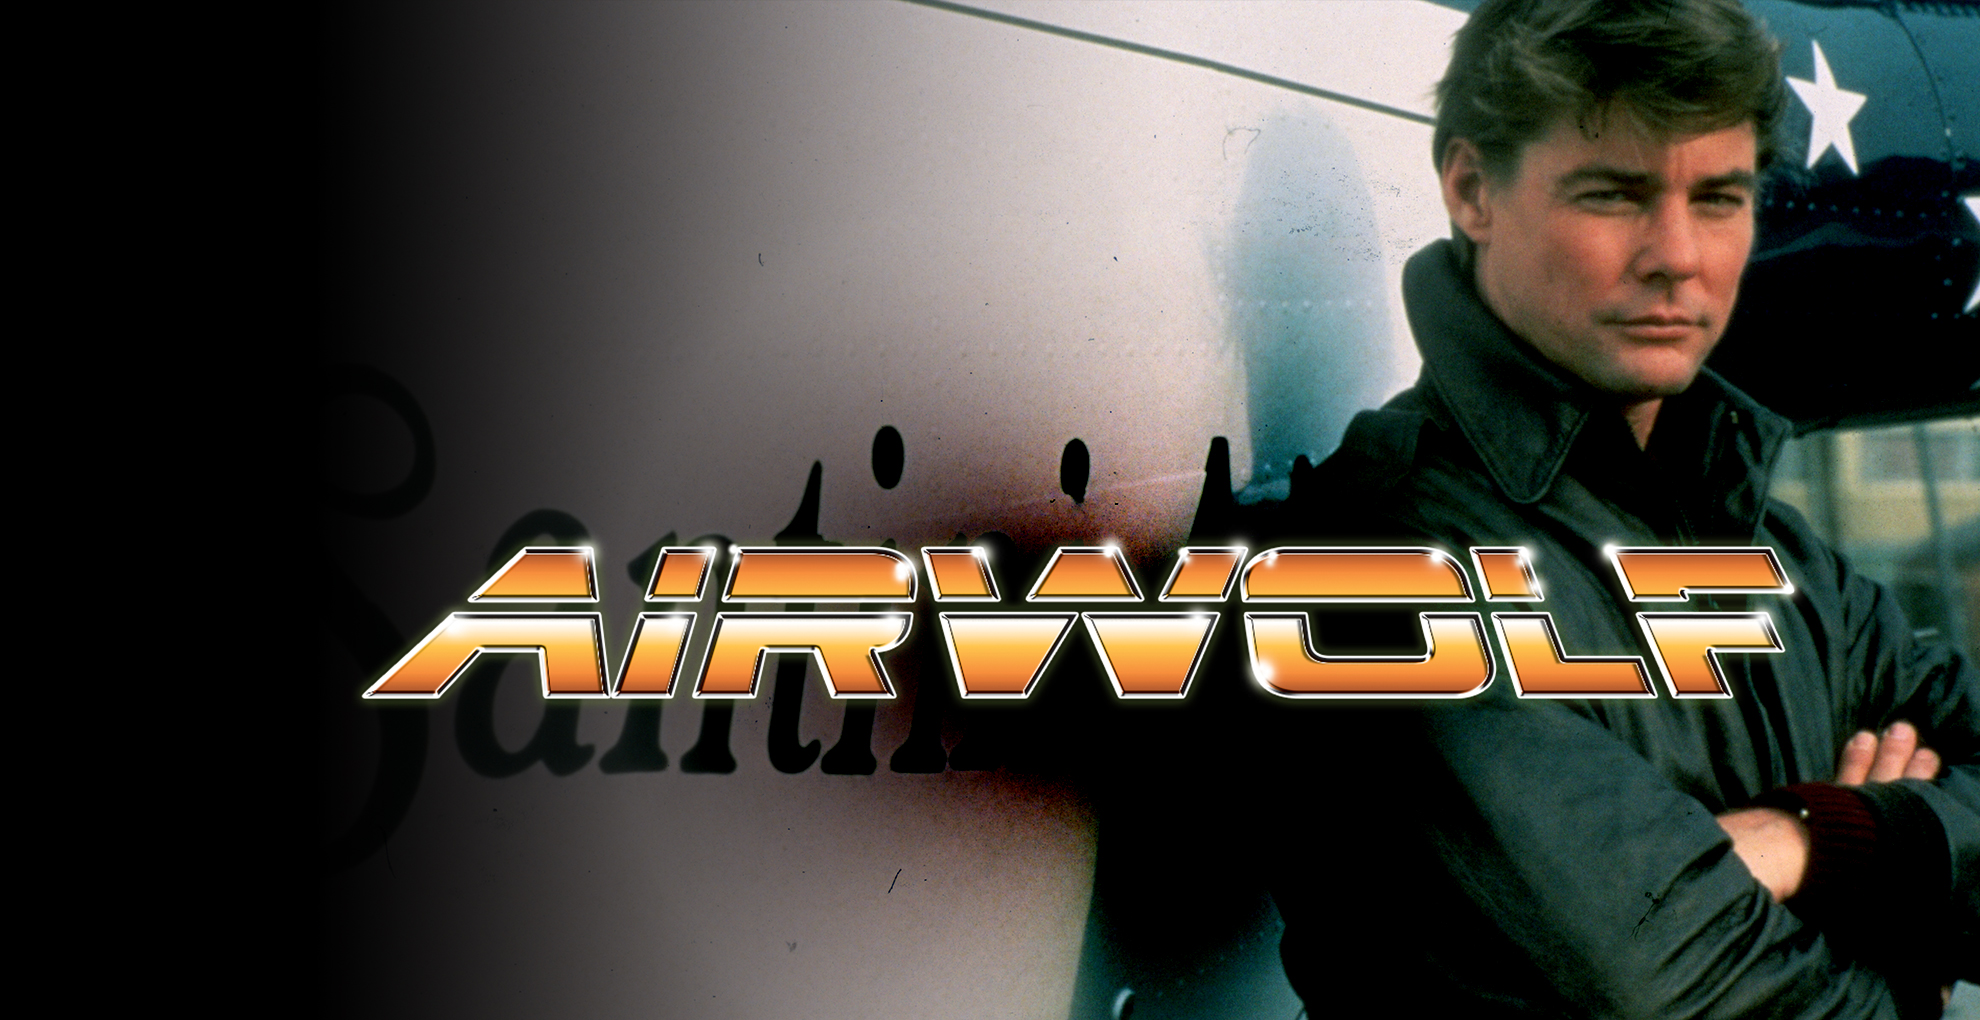 helicopter series airwolf with Airwolf 1985 Eagles And Annie Oakley on Knight Riderairwolfa Teamstreethawk likewise Airwolf 1985 Eagles And Annie Oakley as well Watch besides Watch furthermore Blue thunder.